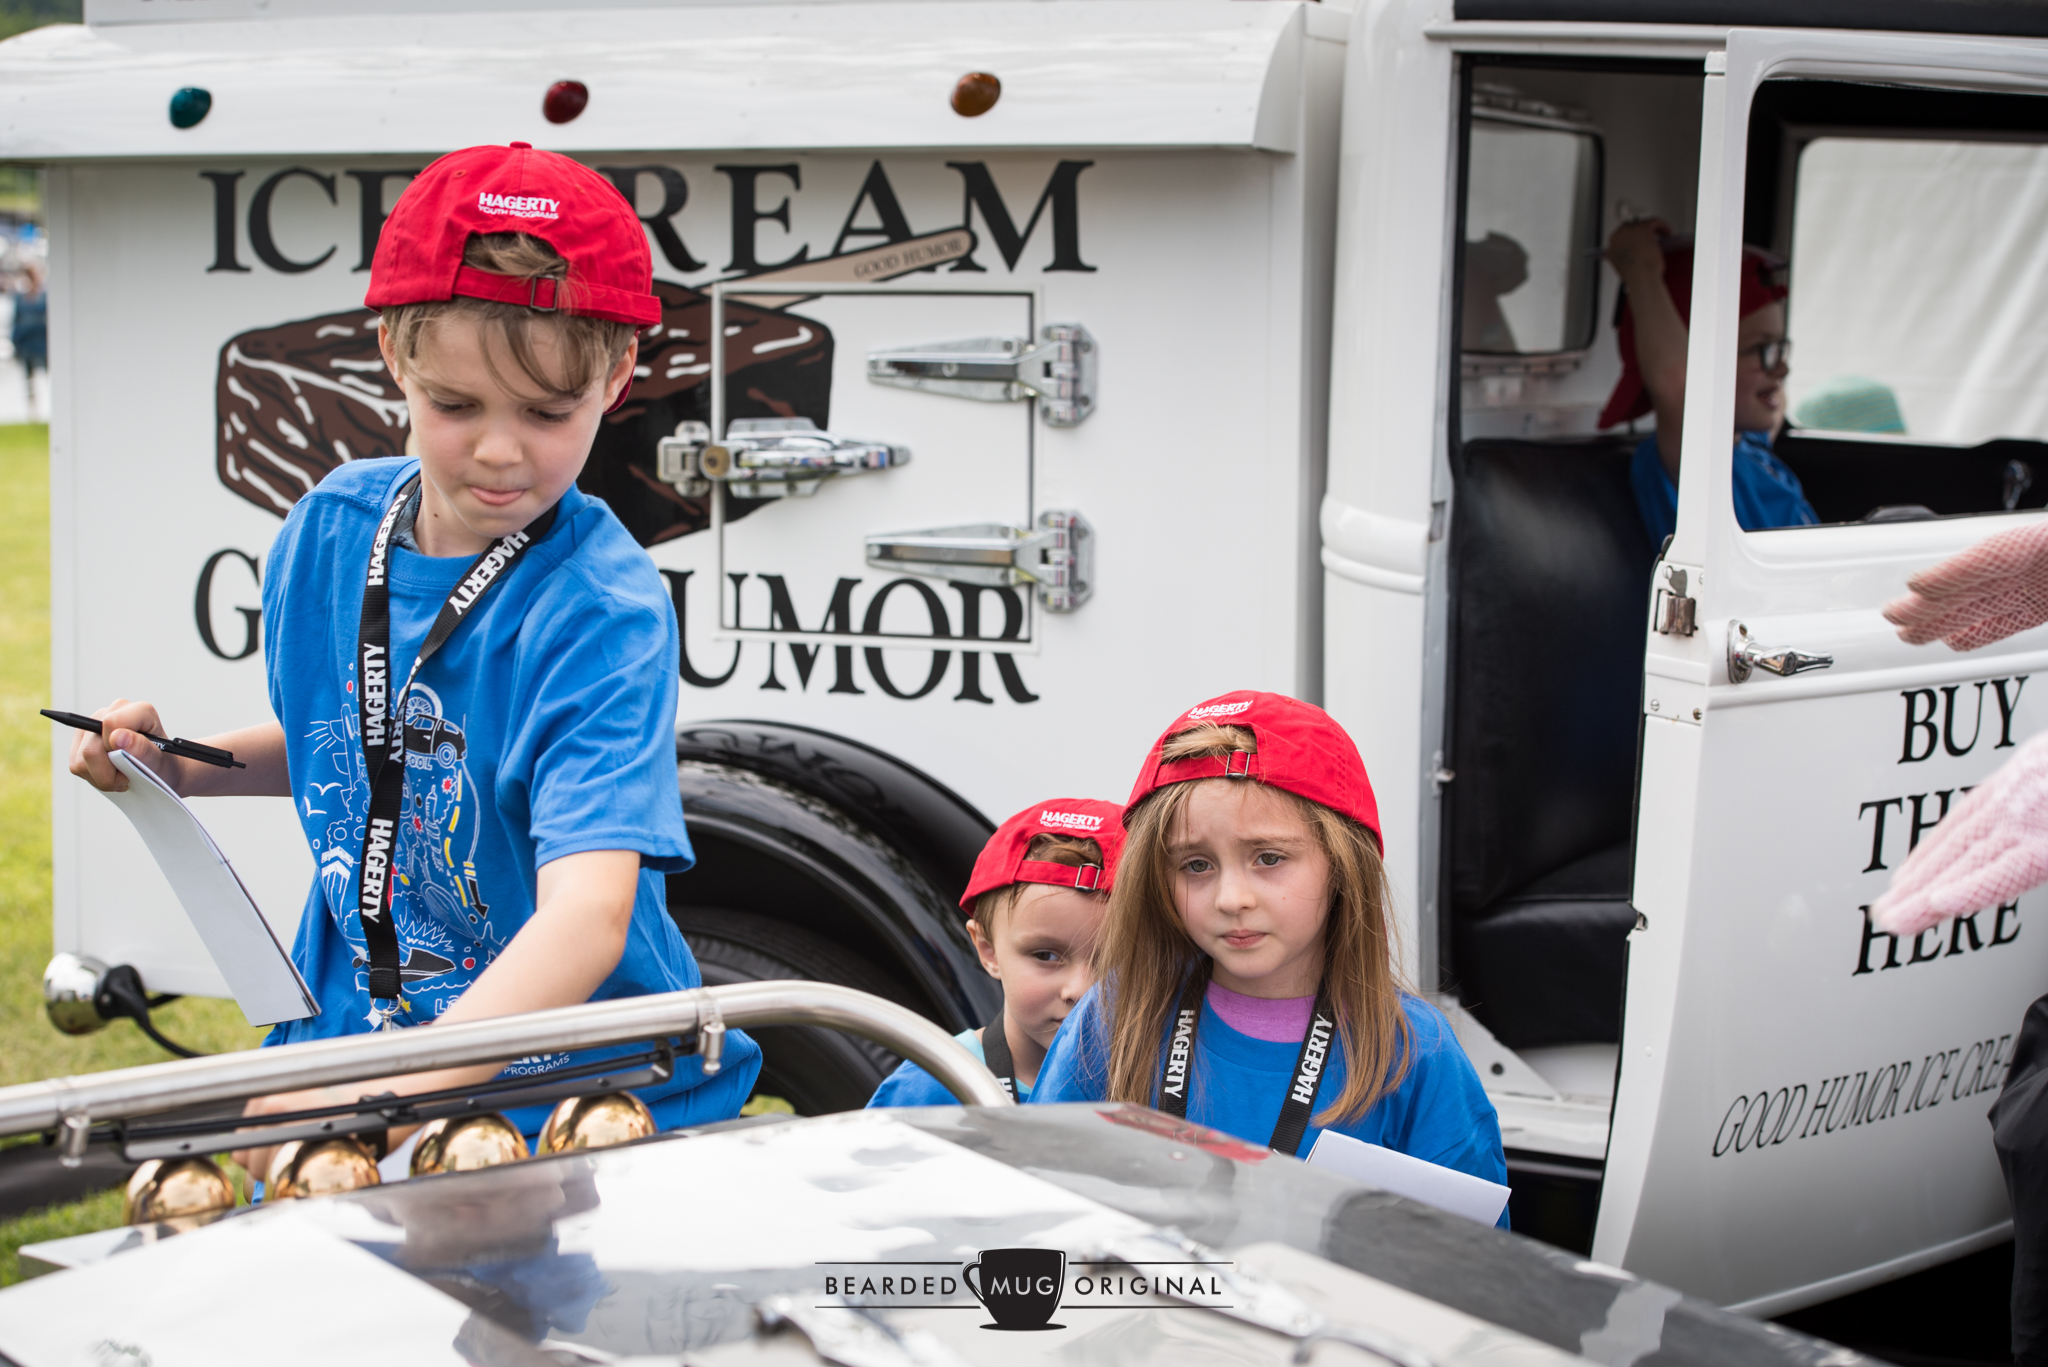 The Hagerty Youth Judges got an opportunity to sample the bells of the adjacent ice cream cart while critiquing the Good Humor truck.